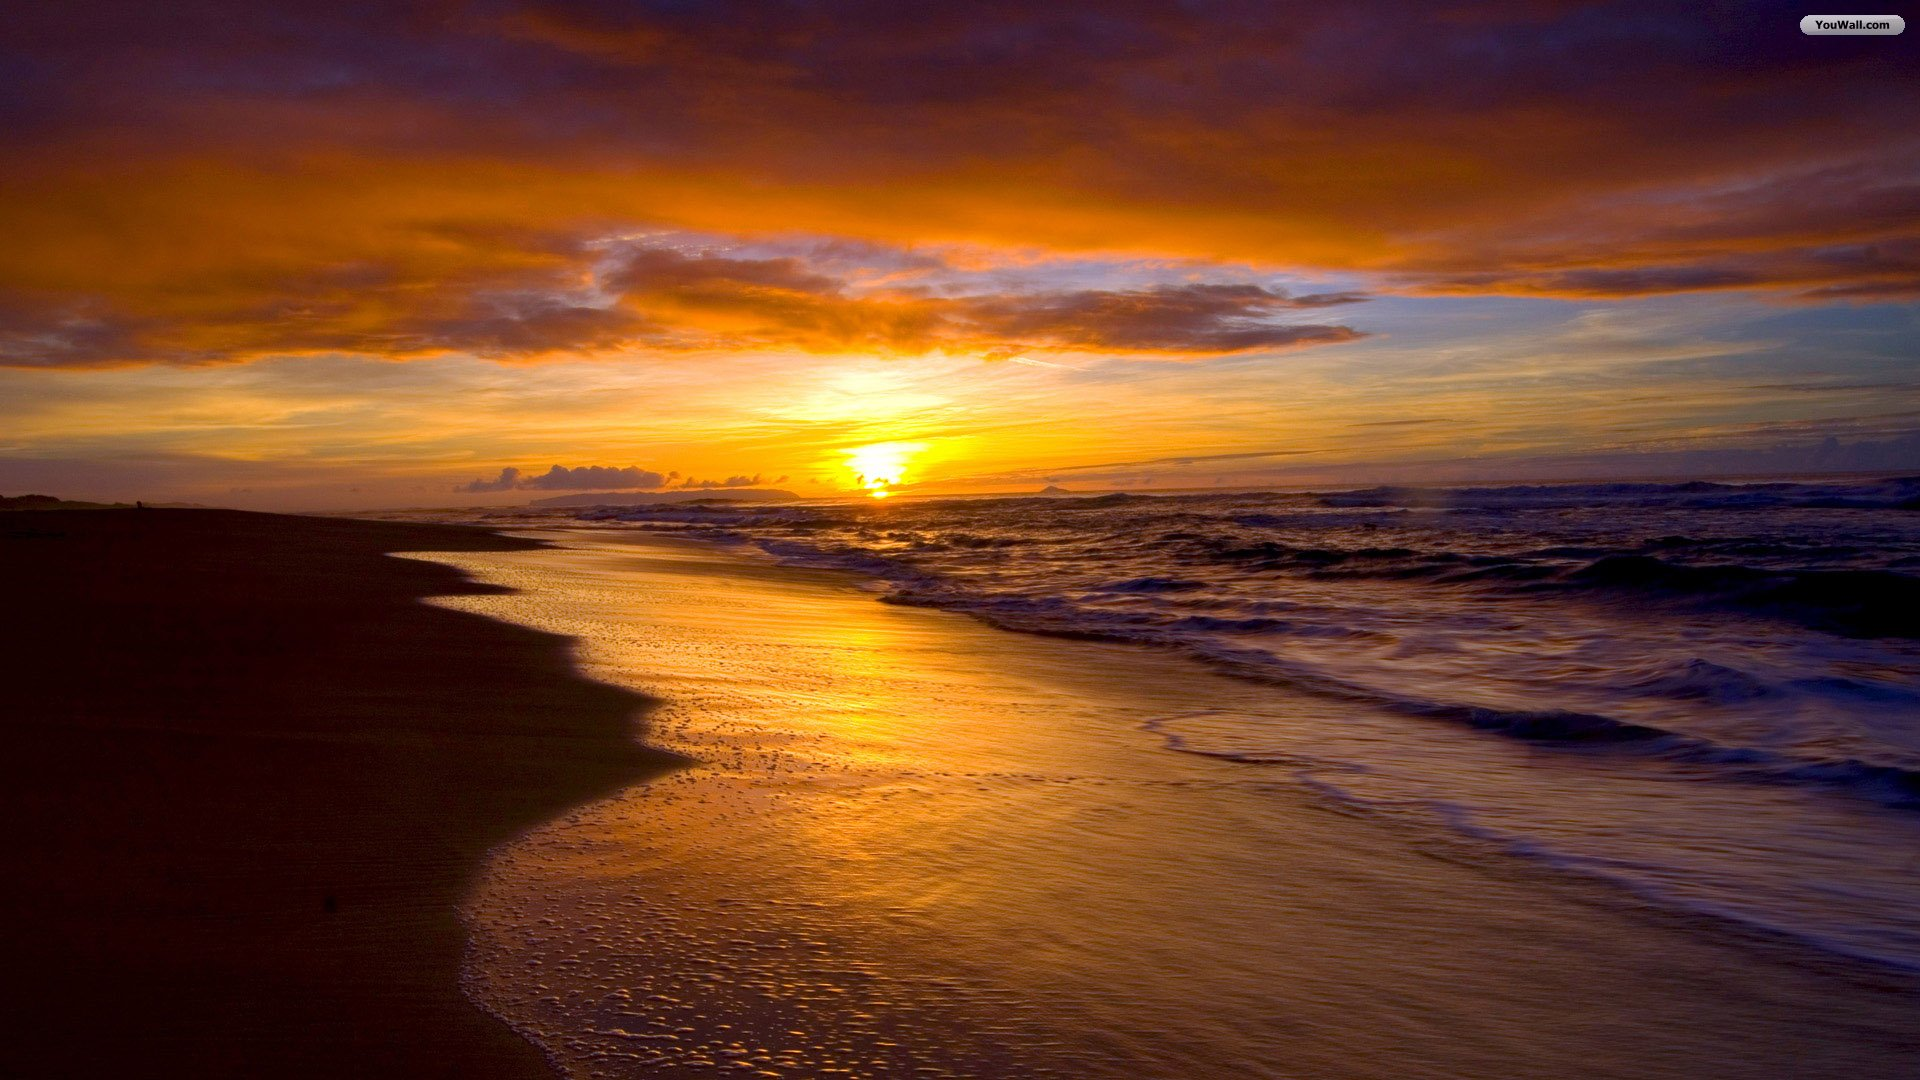 Sunset Wallpaper Beach Pictures Collection 1920x1080